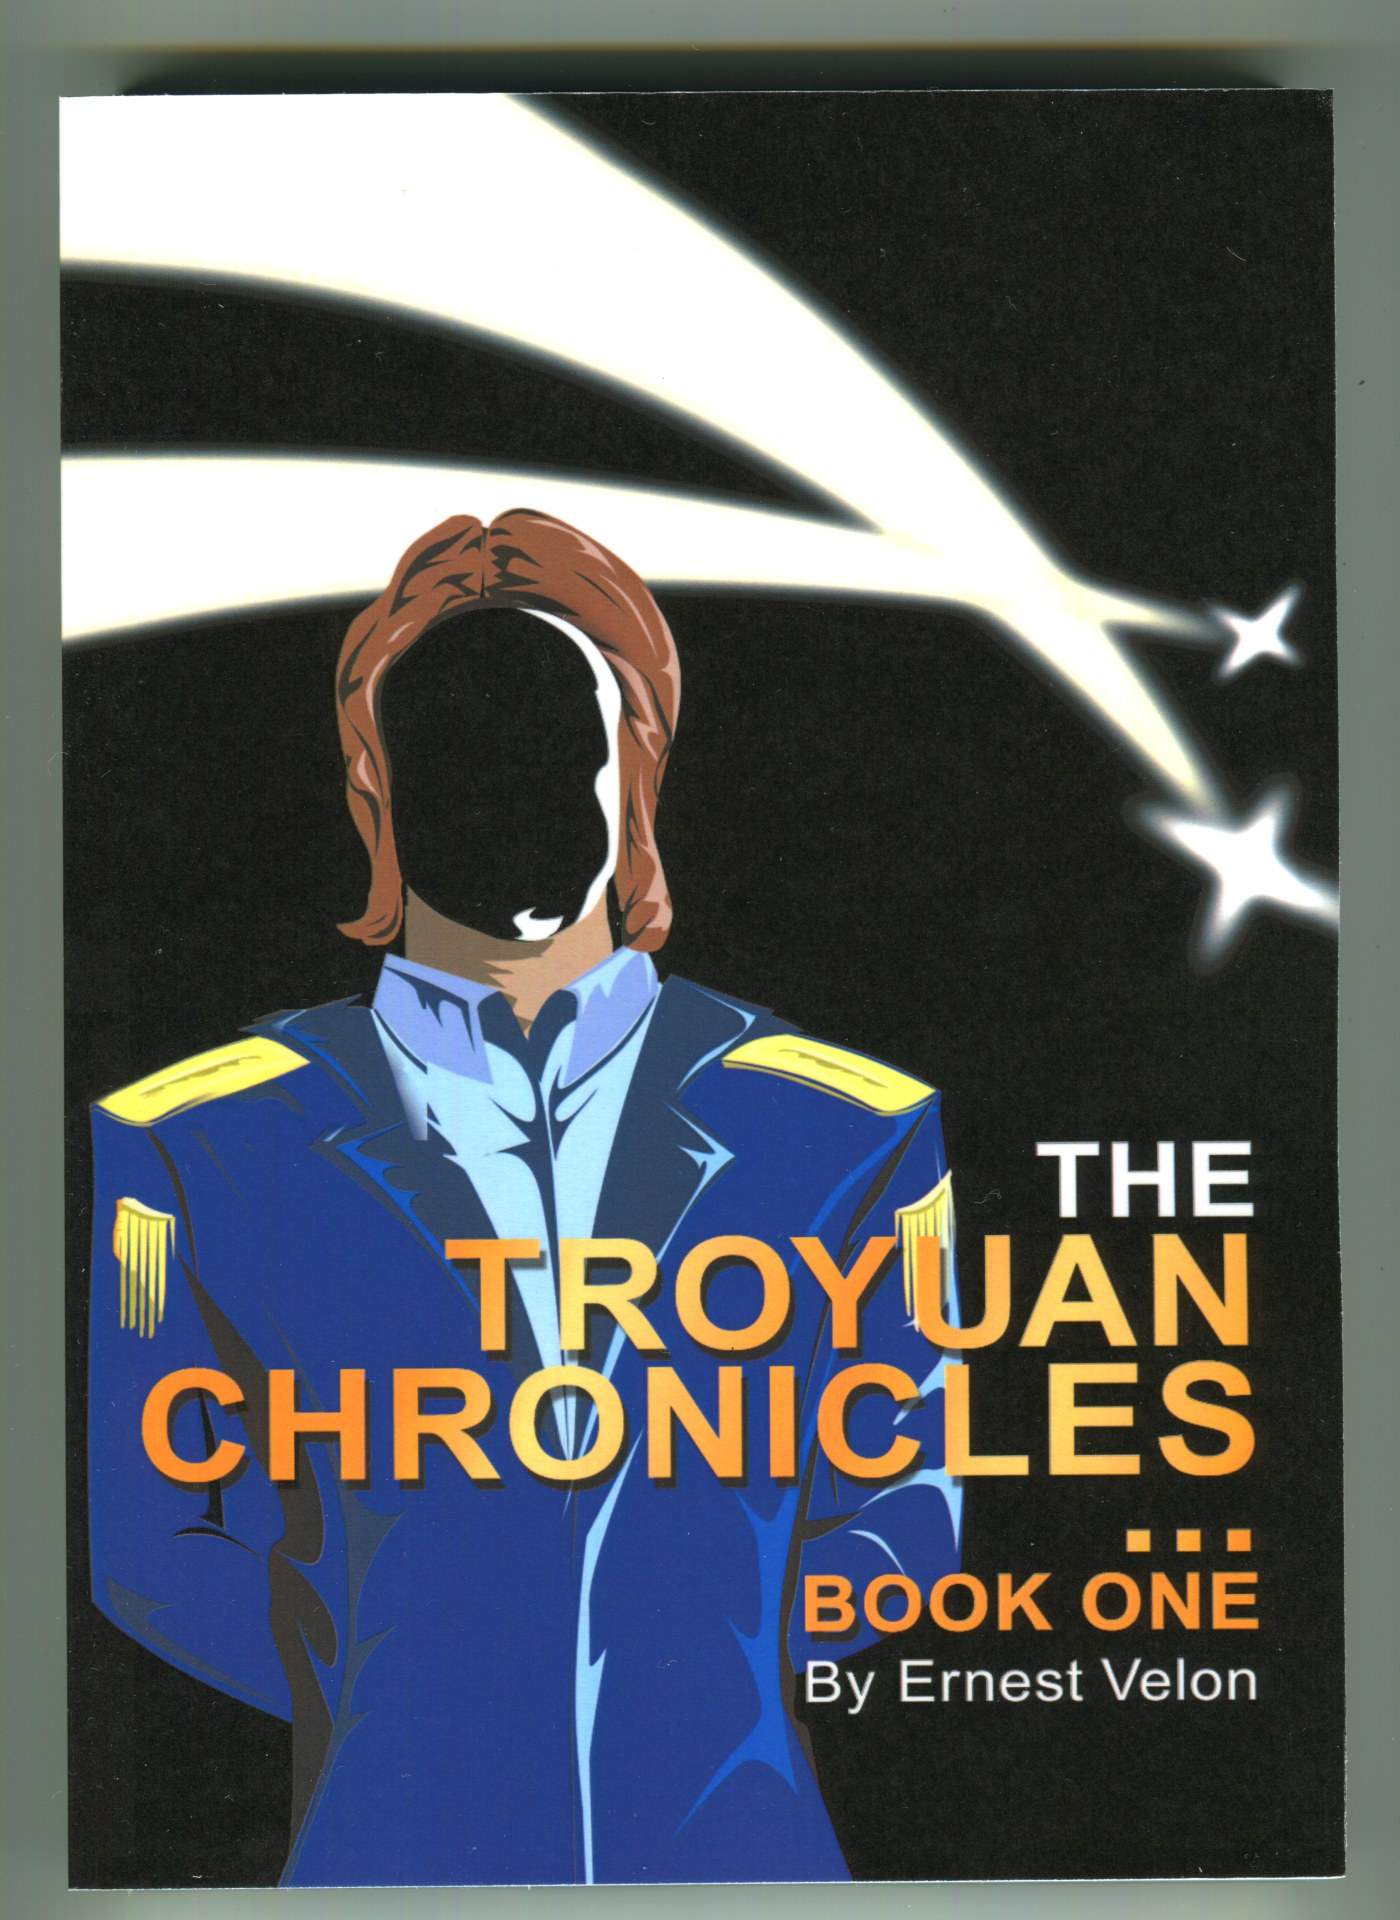 The Troyuan Chronicals... Book One